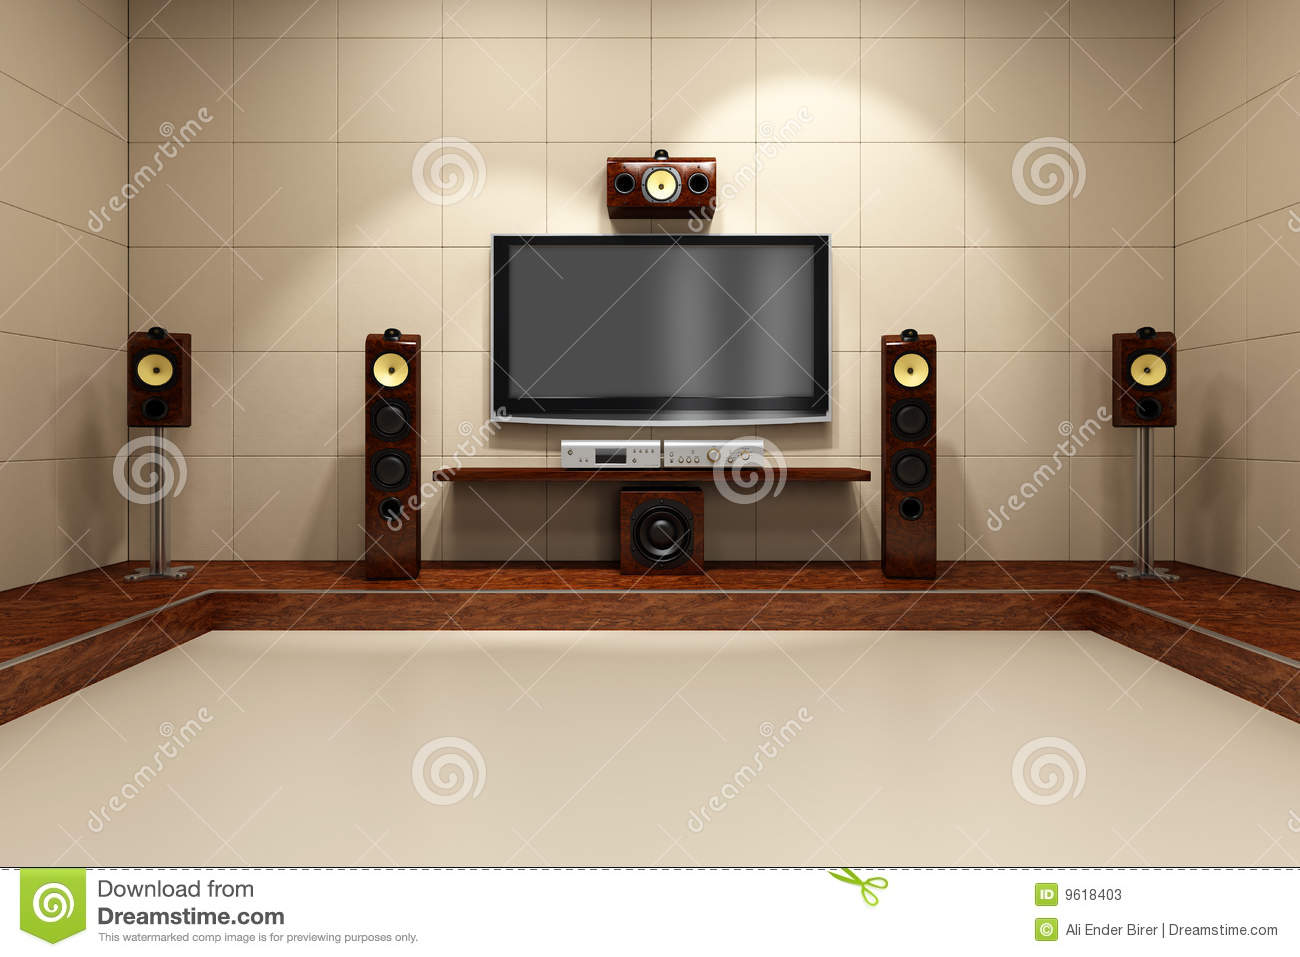 Home Theater Room Stock Illustrations 1 772 Home Theater Room Stock Illustrations Vectors Clipart Dreamstime